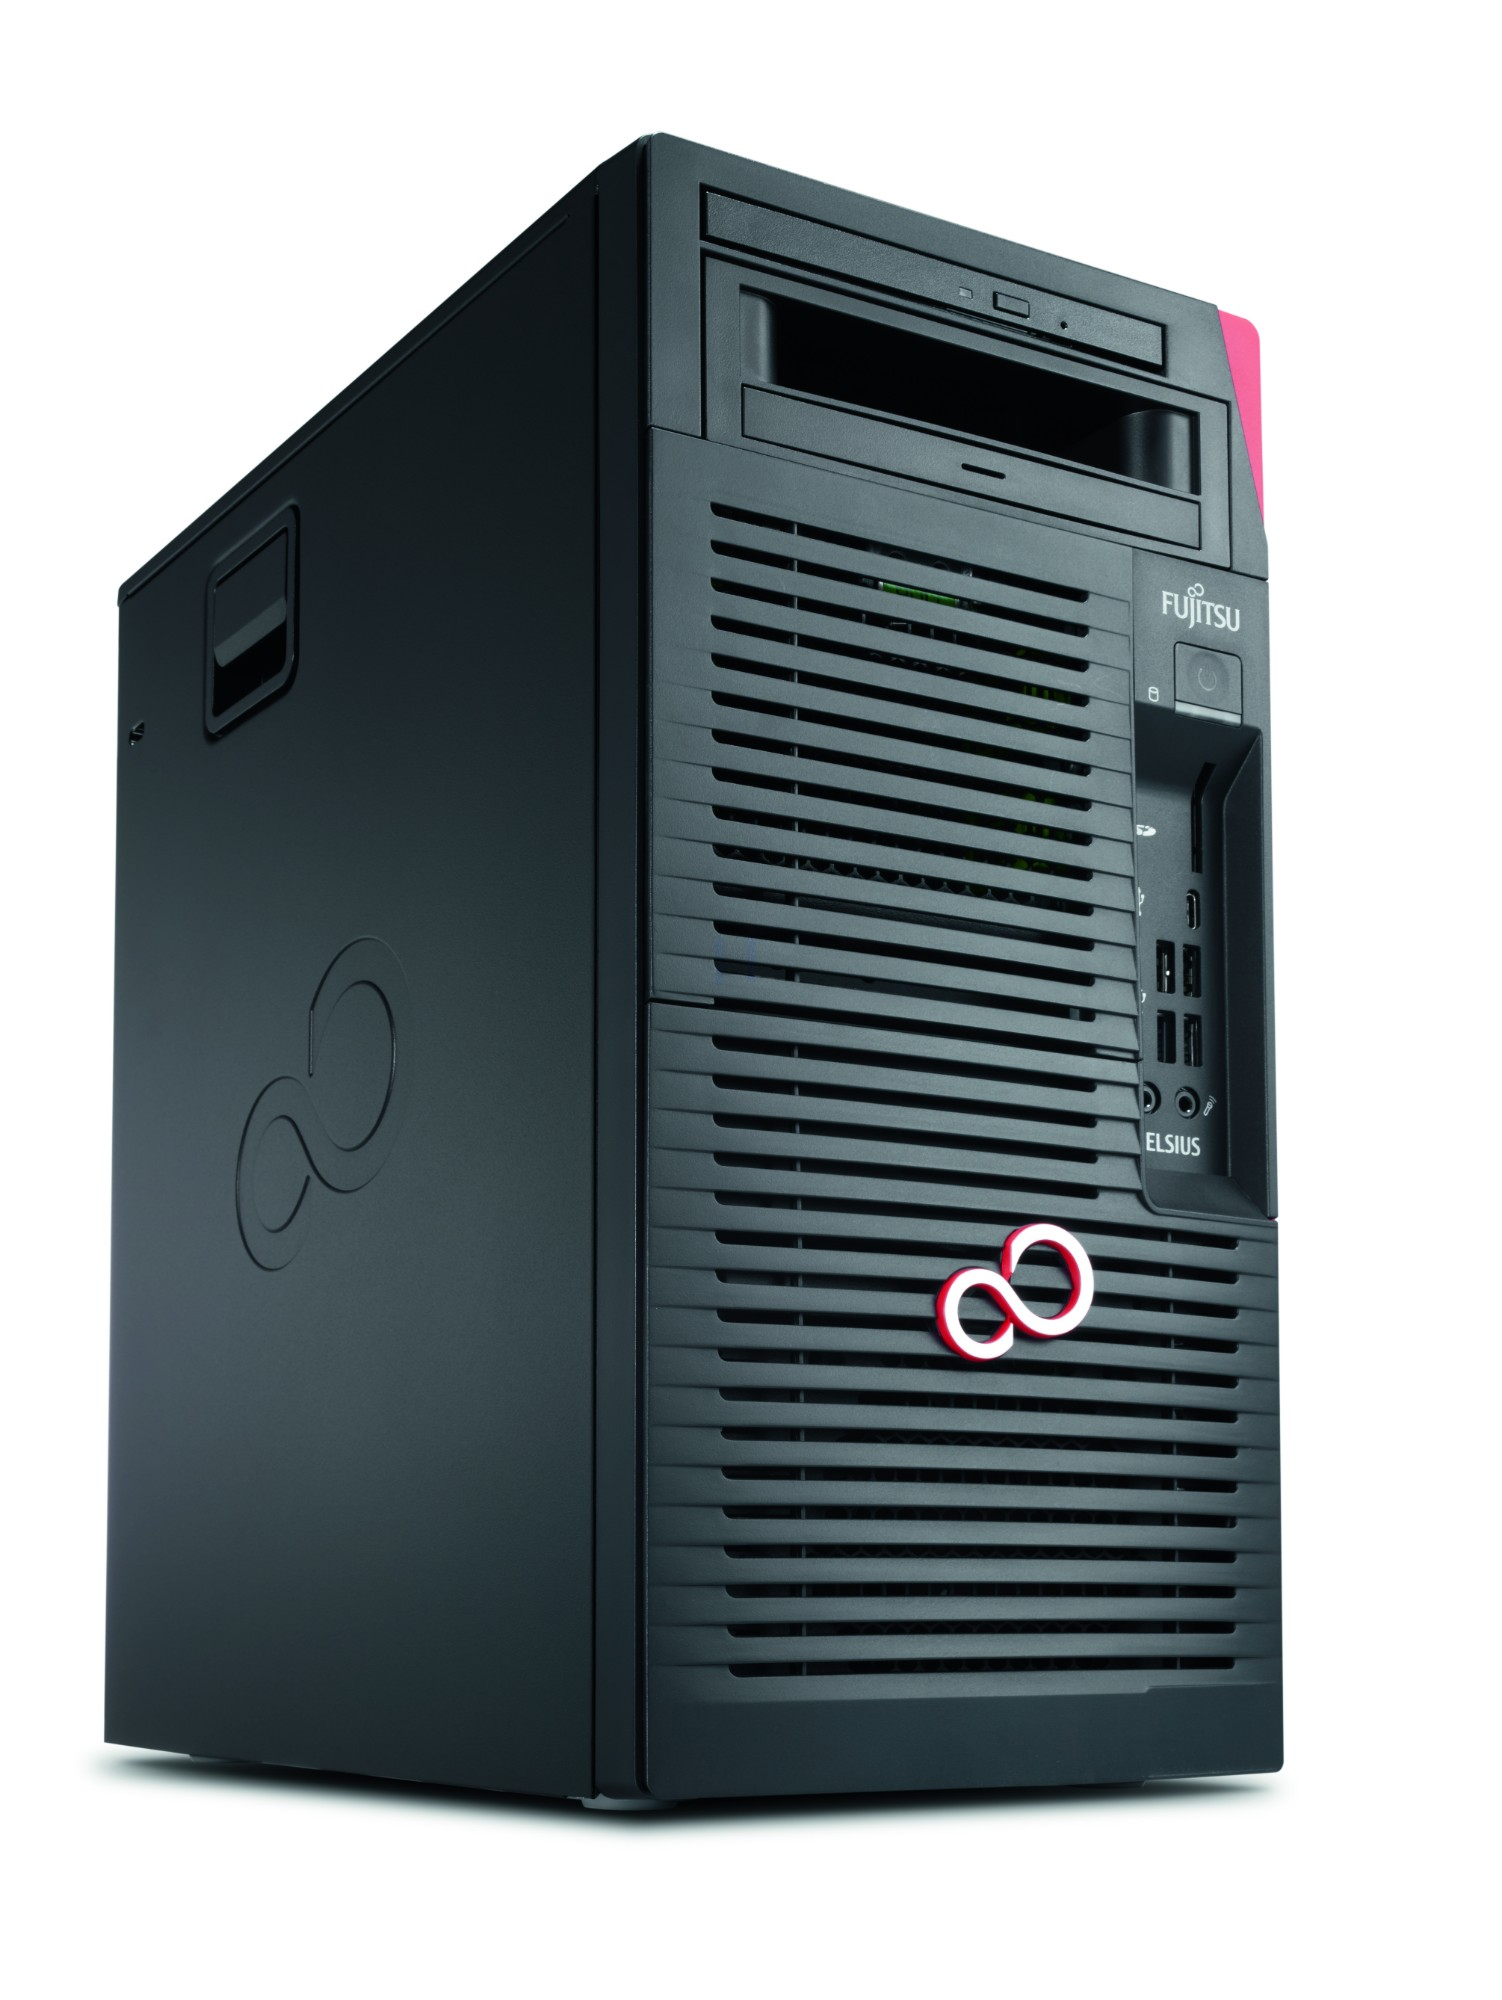 Fujitsu CELSIUS W570power+ 3.6GHz i7-7700 Desktop Black,Red Workstation